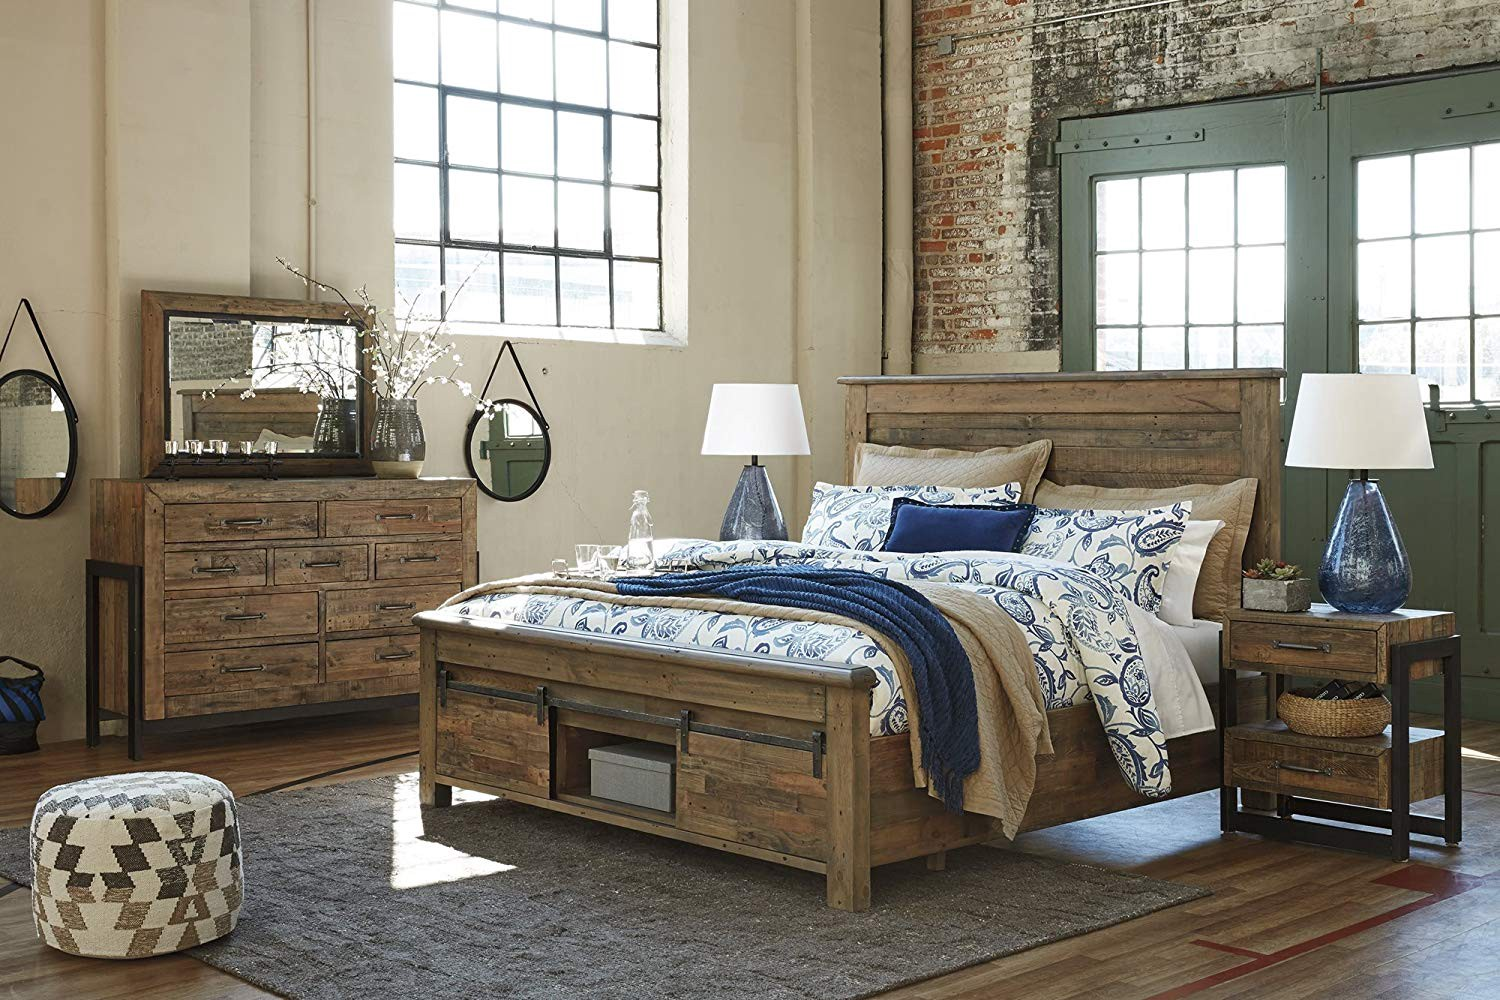 Ashley Furniture Sommerford 5 Pc Bed Set In Brown B775 By Premier Furniture Medium